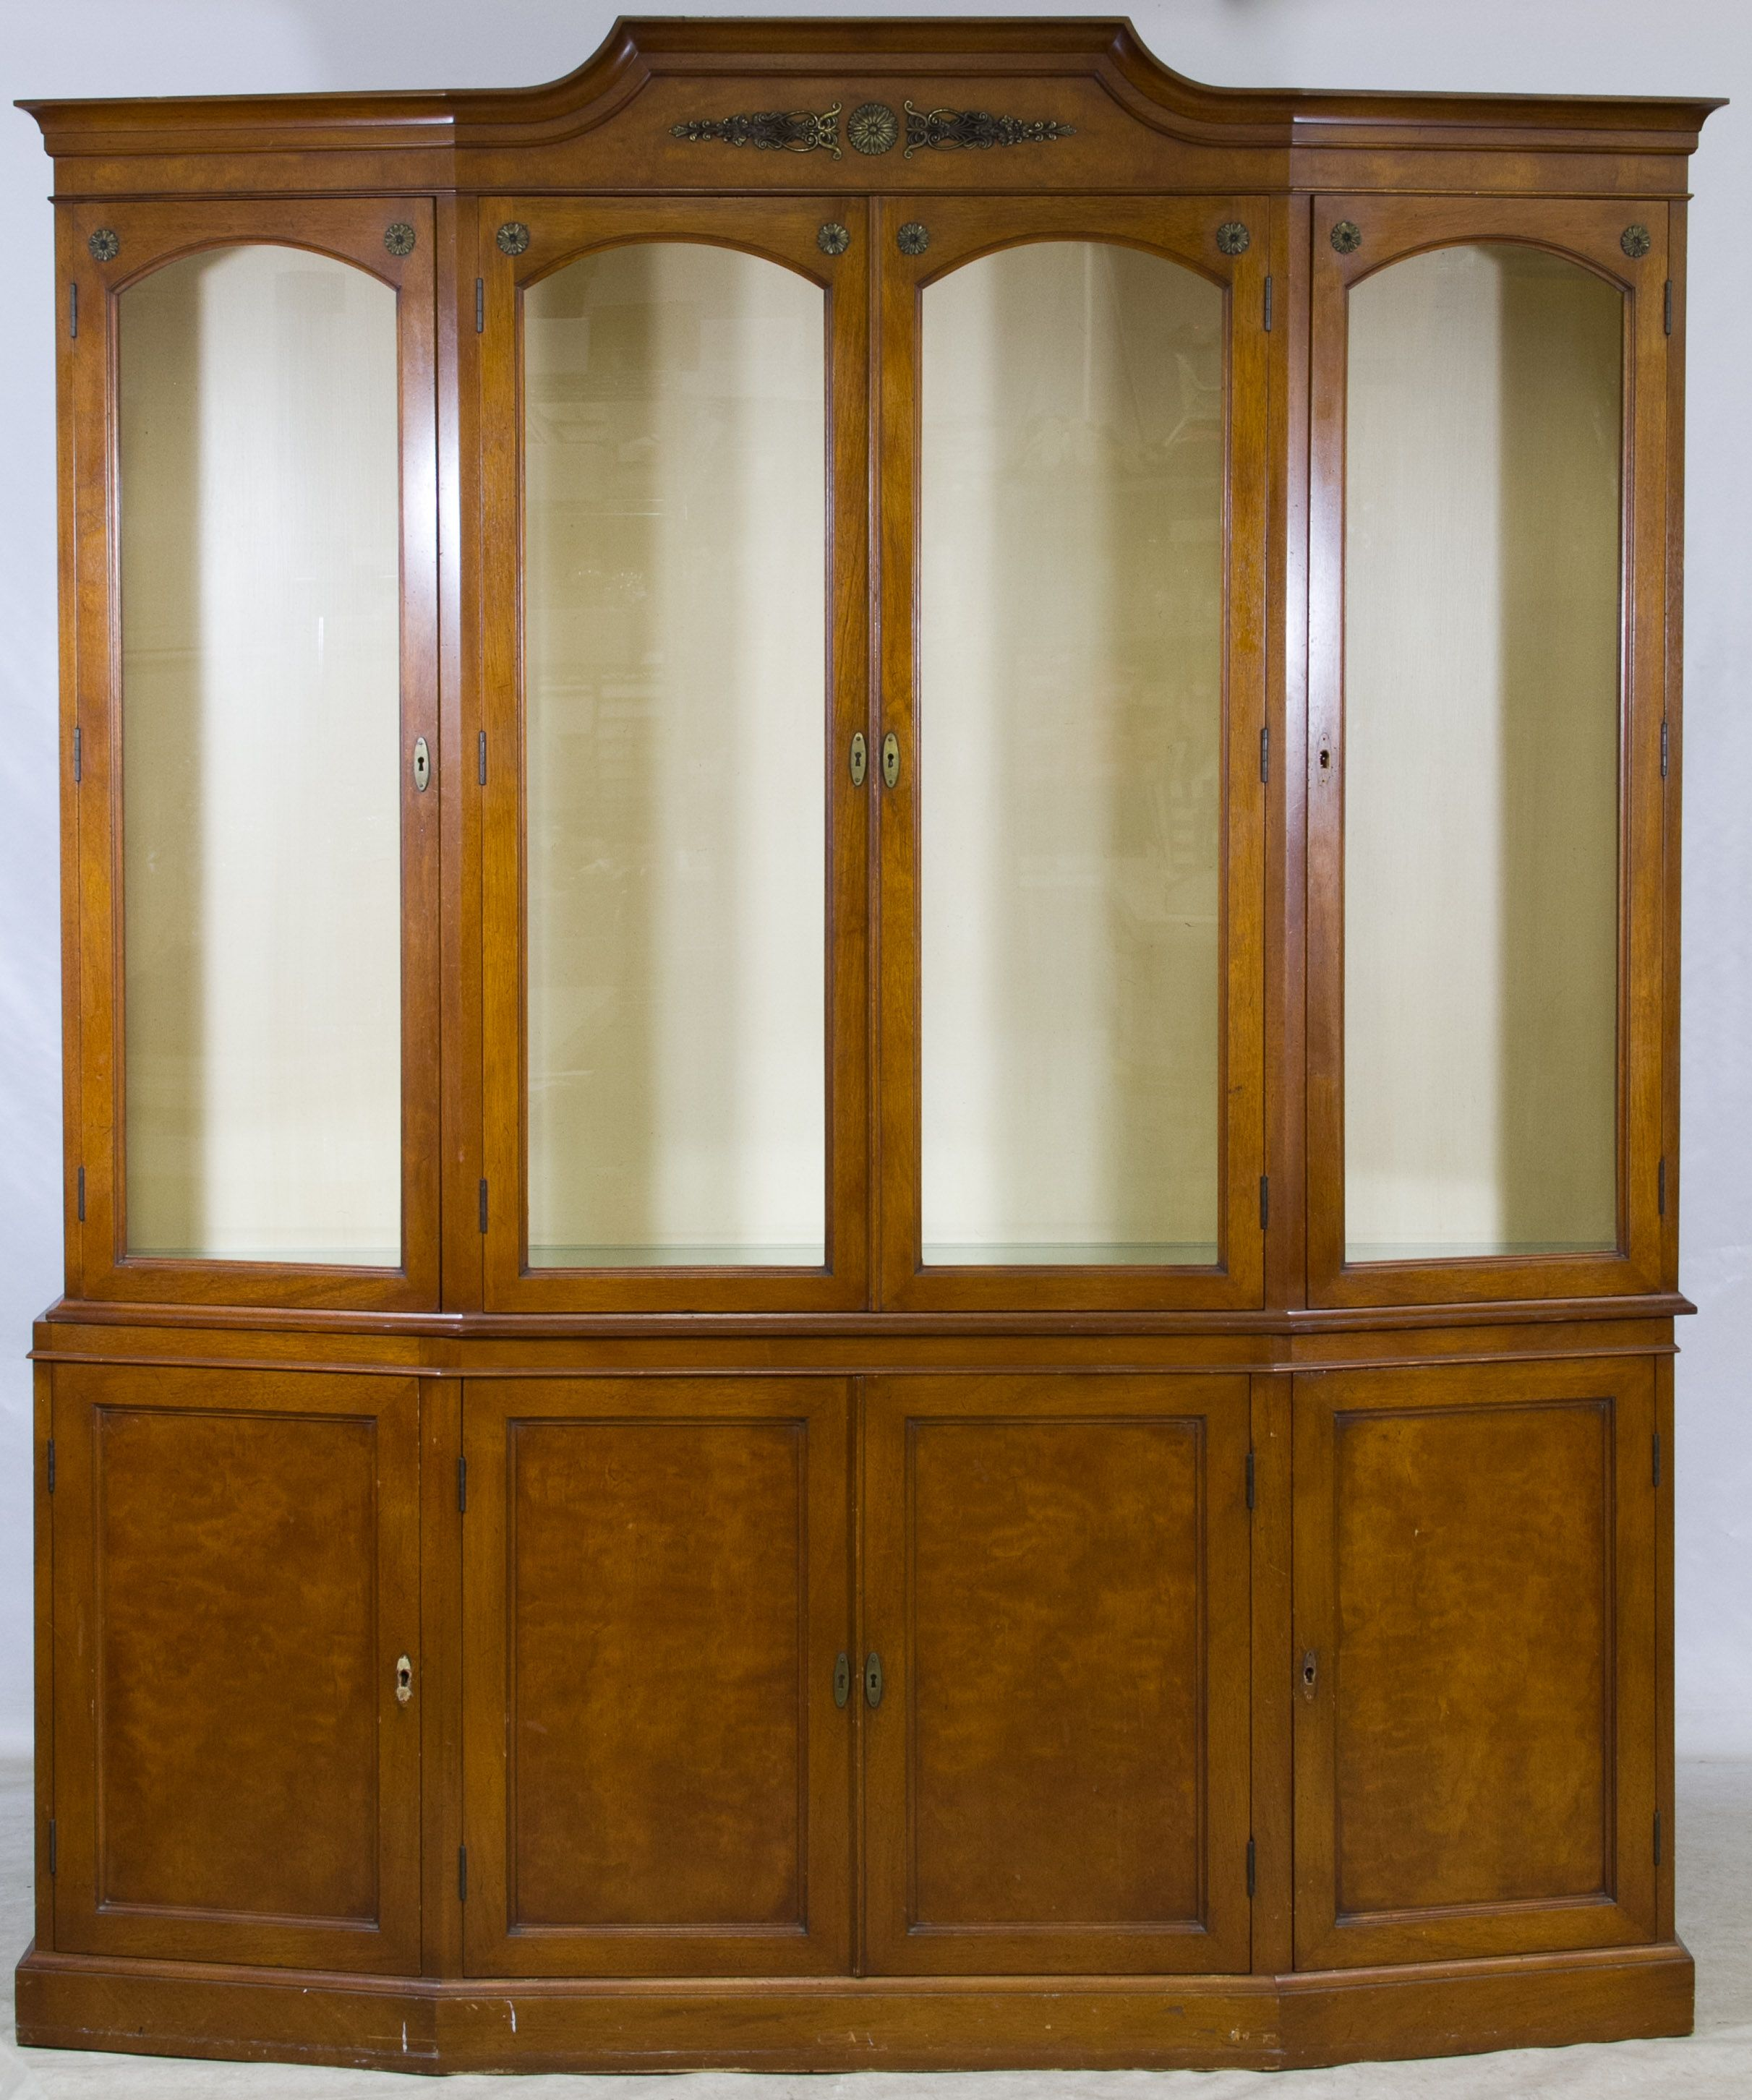 Lot 118 Mahogany Display Cabinet Having Four Wood Framed Glass